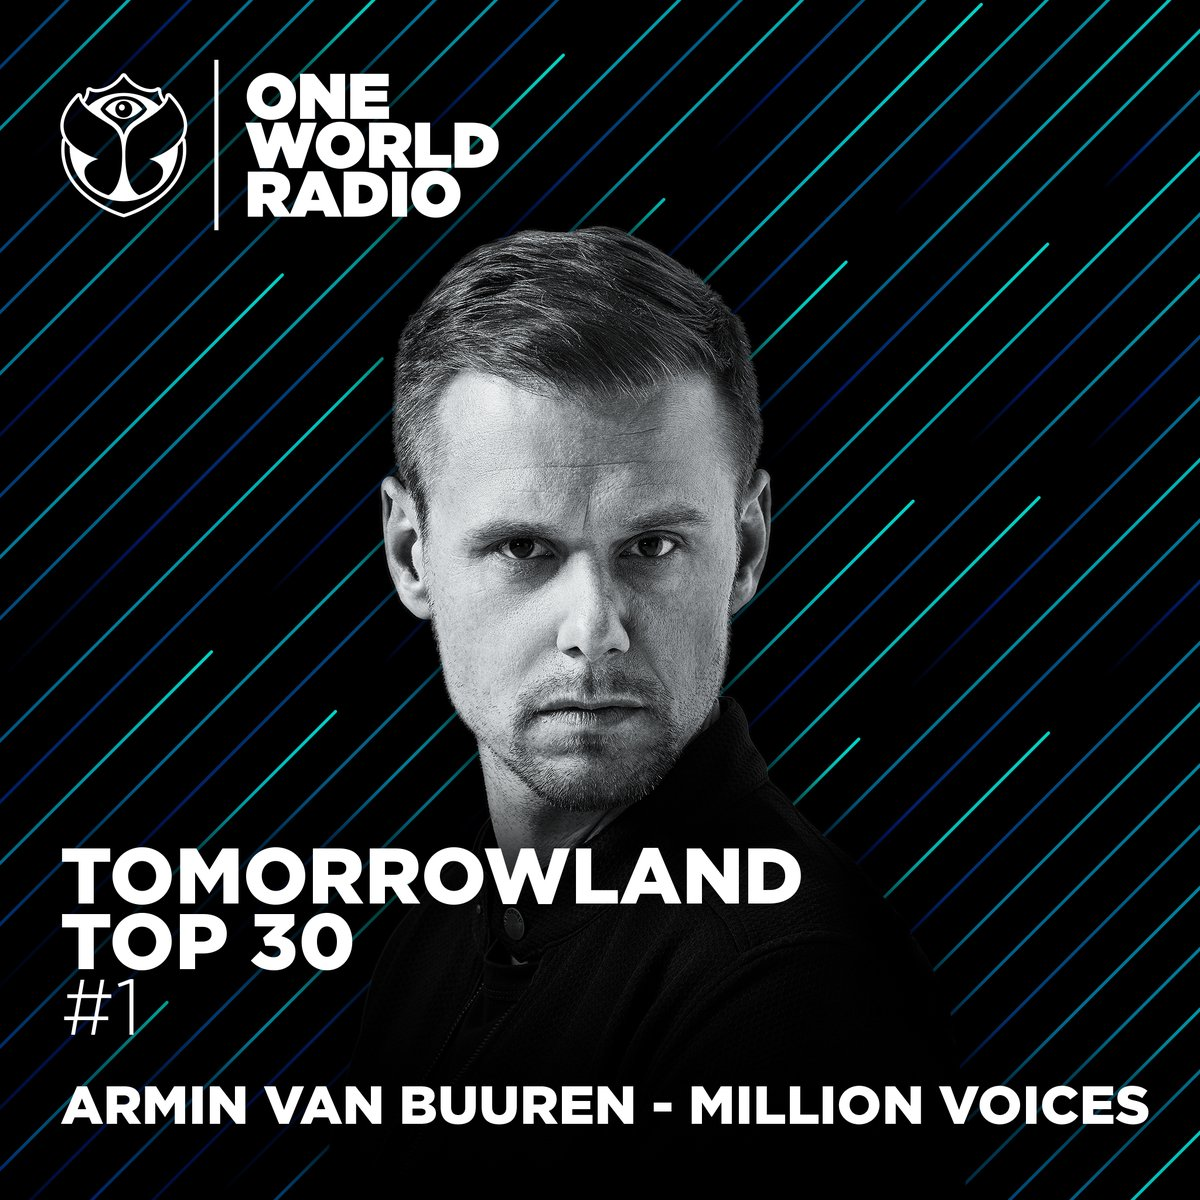 Million Voices #1 One World Radio @tomorrowland Top 30, thank you!! #millionvoices